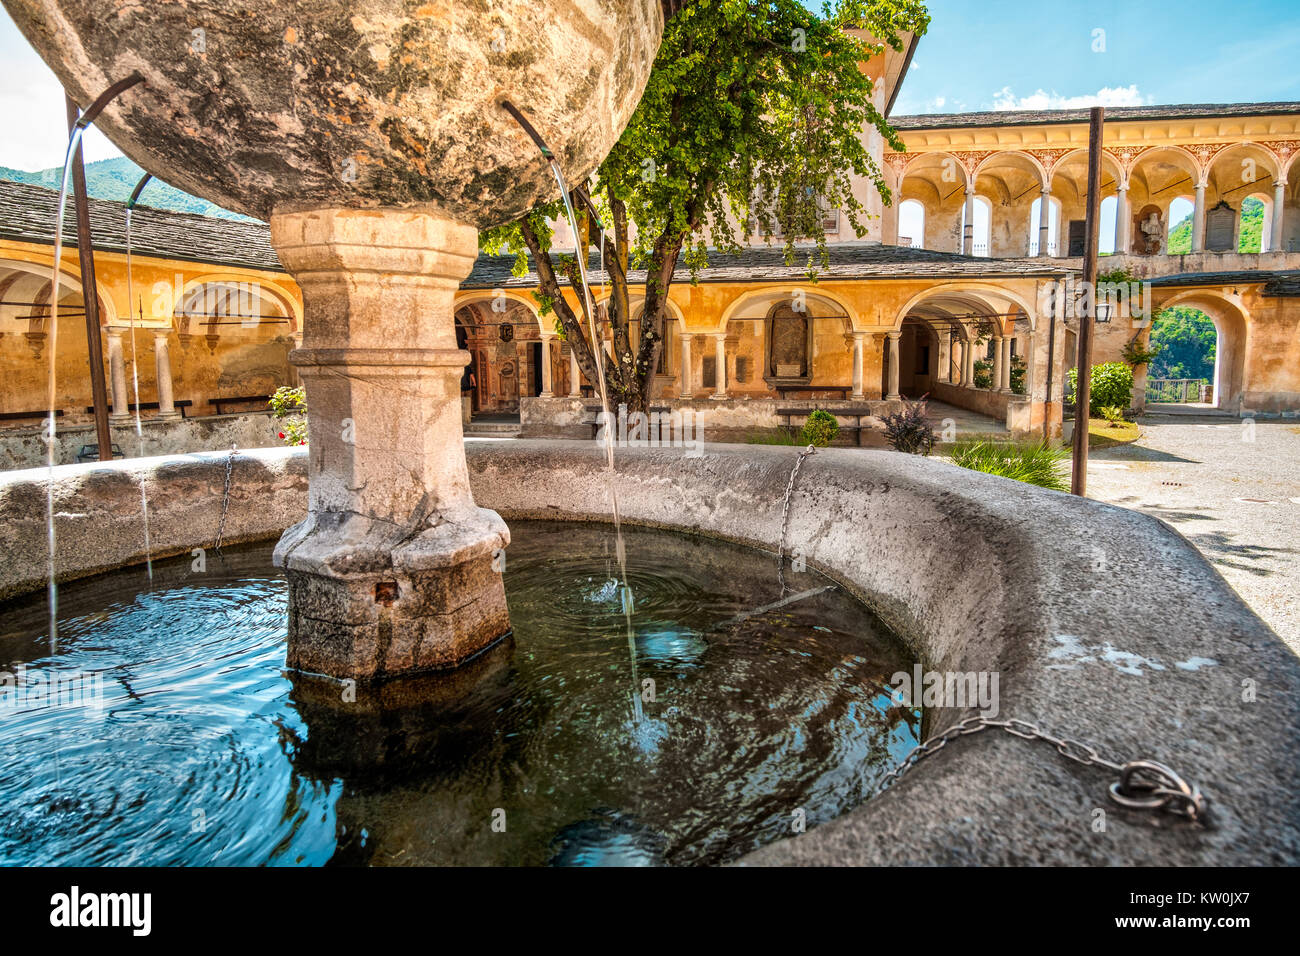 fountain gushing closeup quench thirsty water ancient architectu - Stock Image